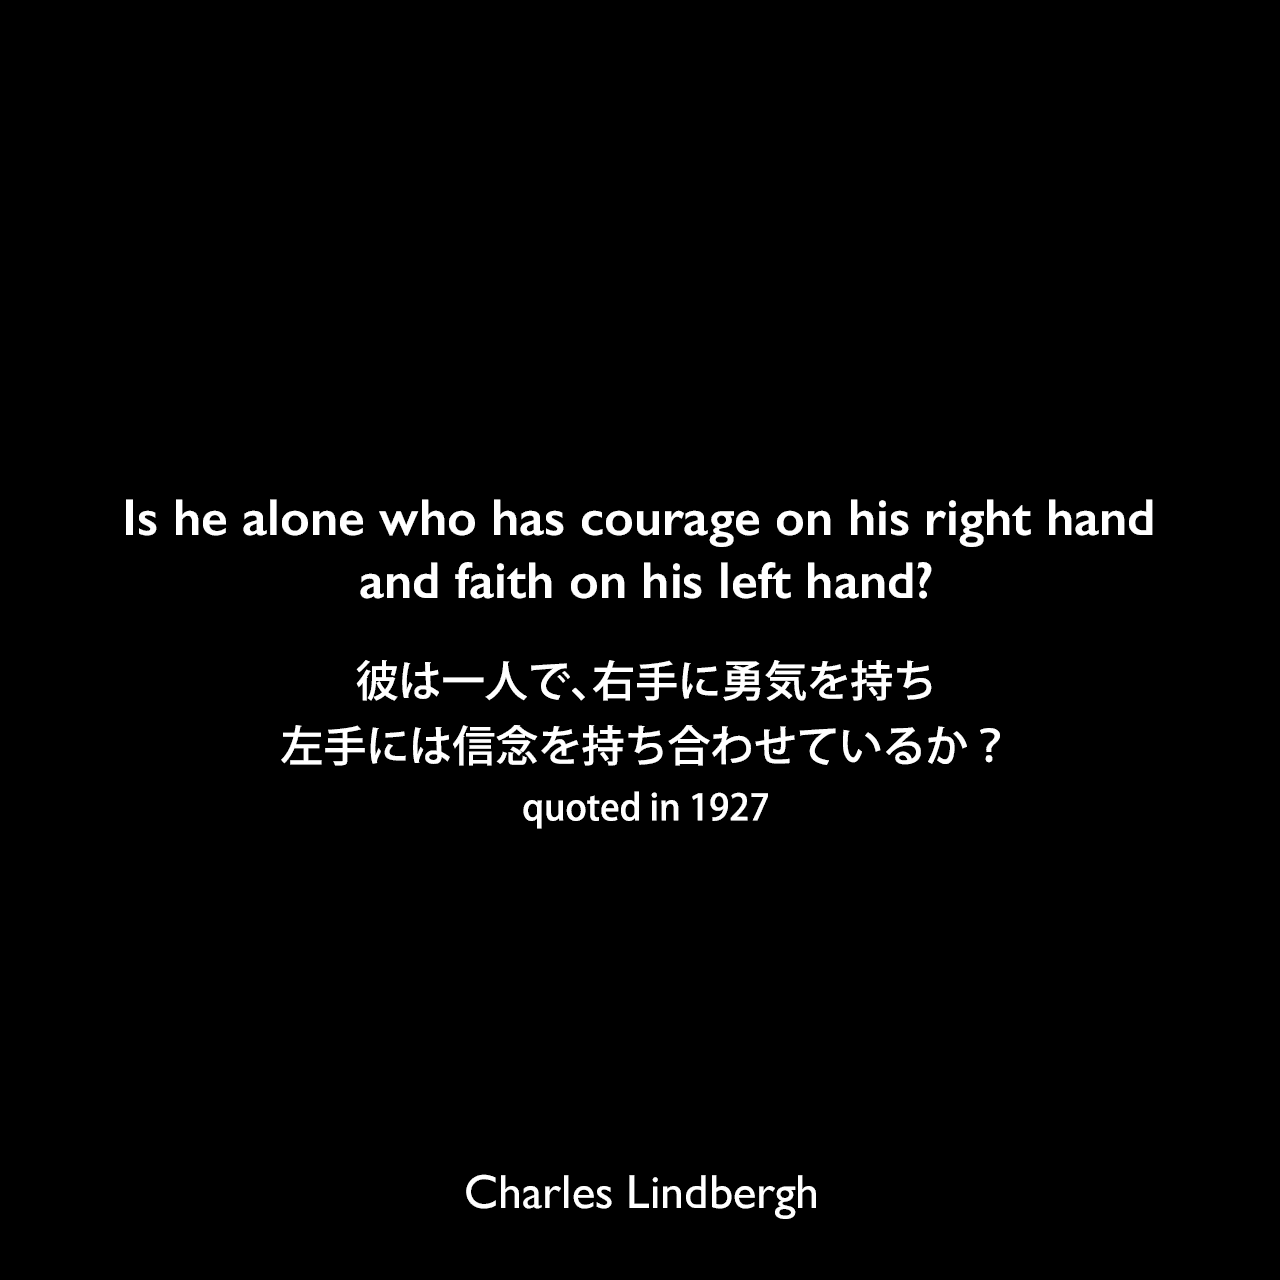 Is he alone who has courage on his right hand and faith on his left hand?彼は一人で、右手に勇気を持ち、左手には信念を持ち合わせているか?(quoted in 1927)Charles Lindbergh